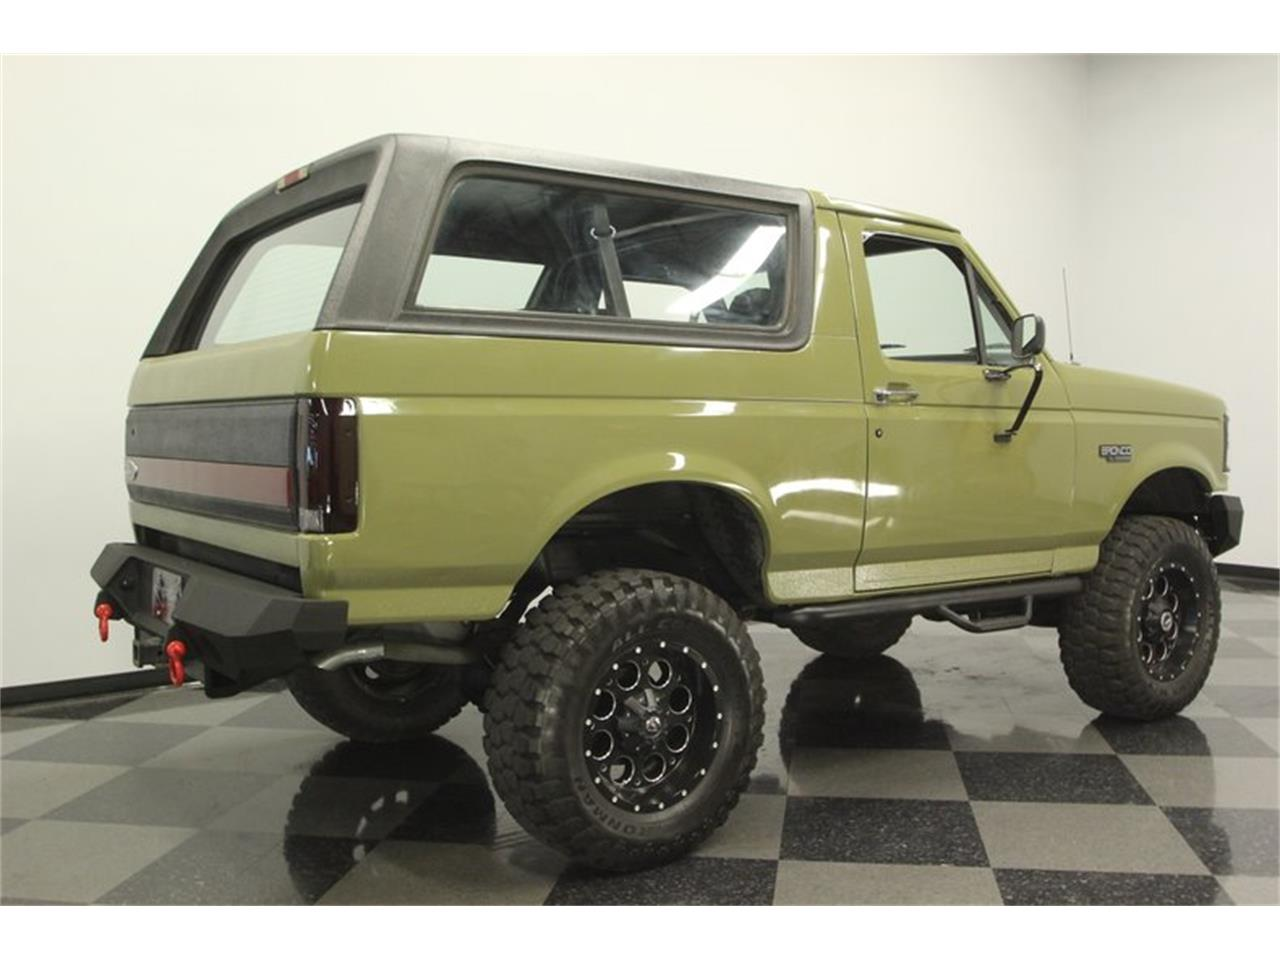 1996 Ford Bronco for sale in Lutz, FL – photo 13